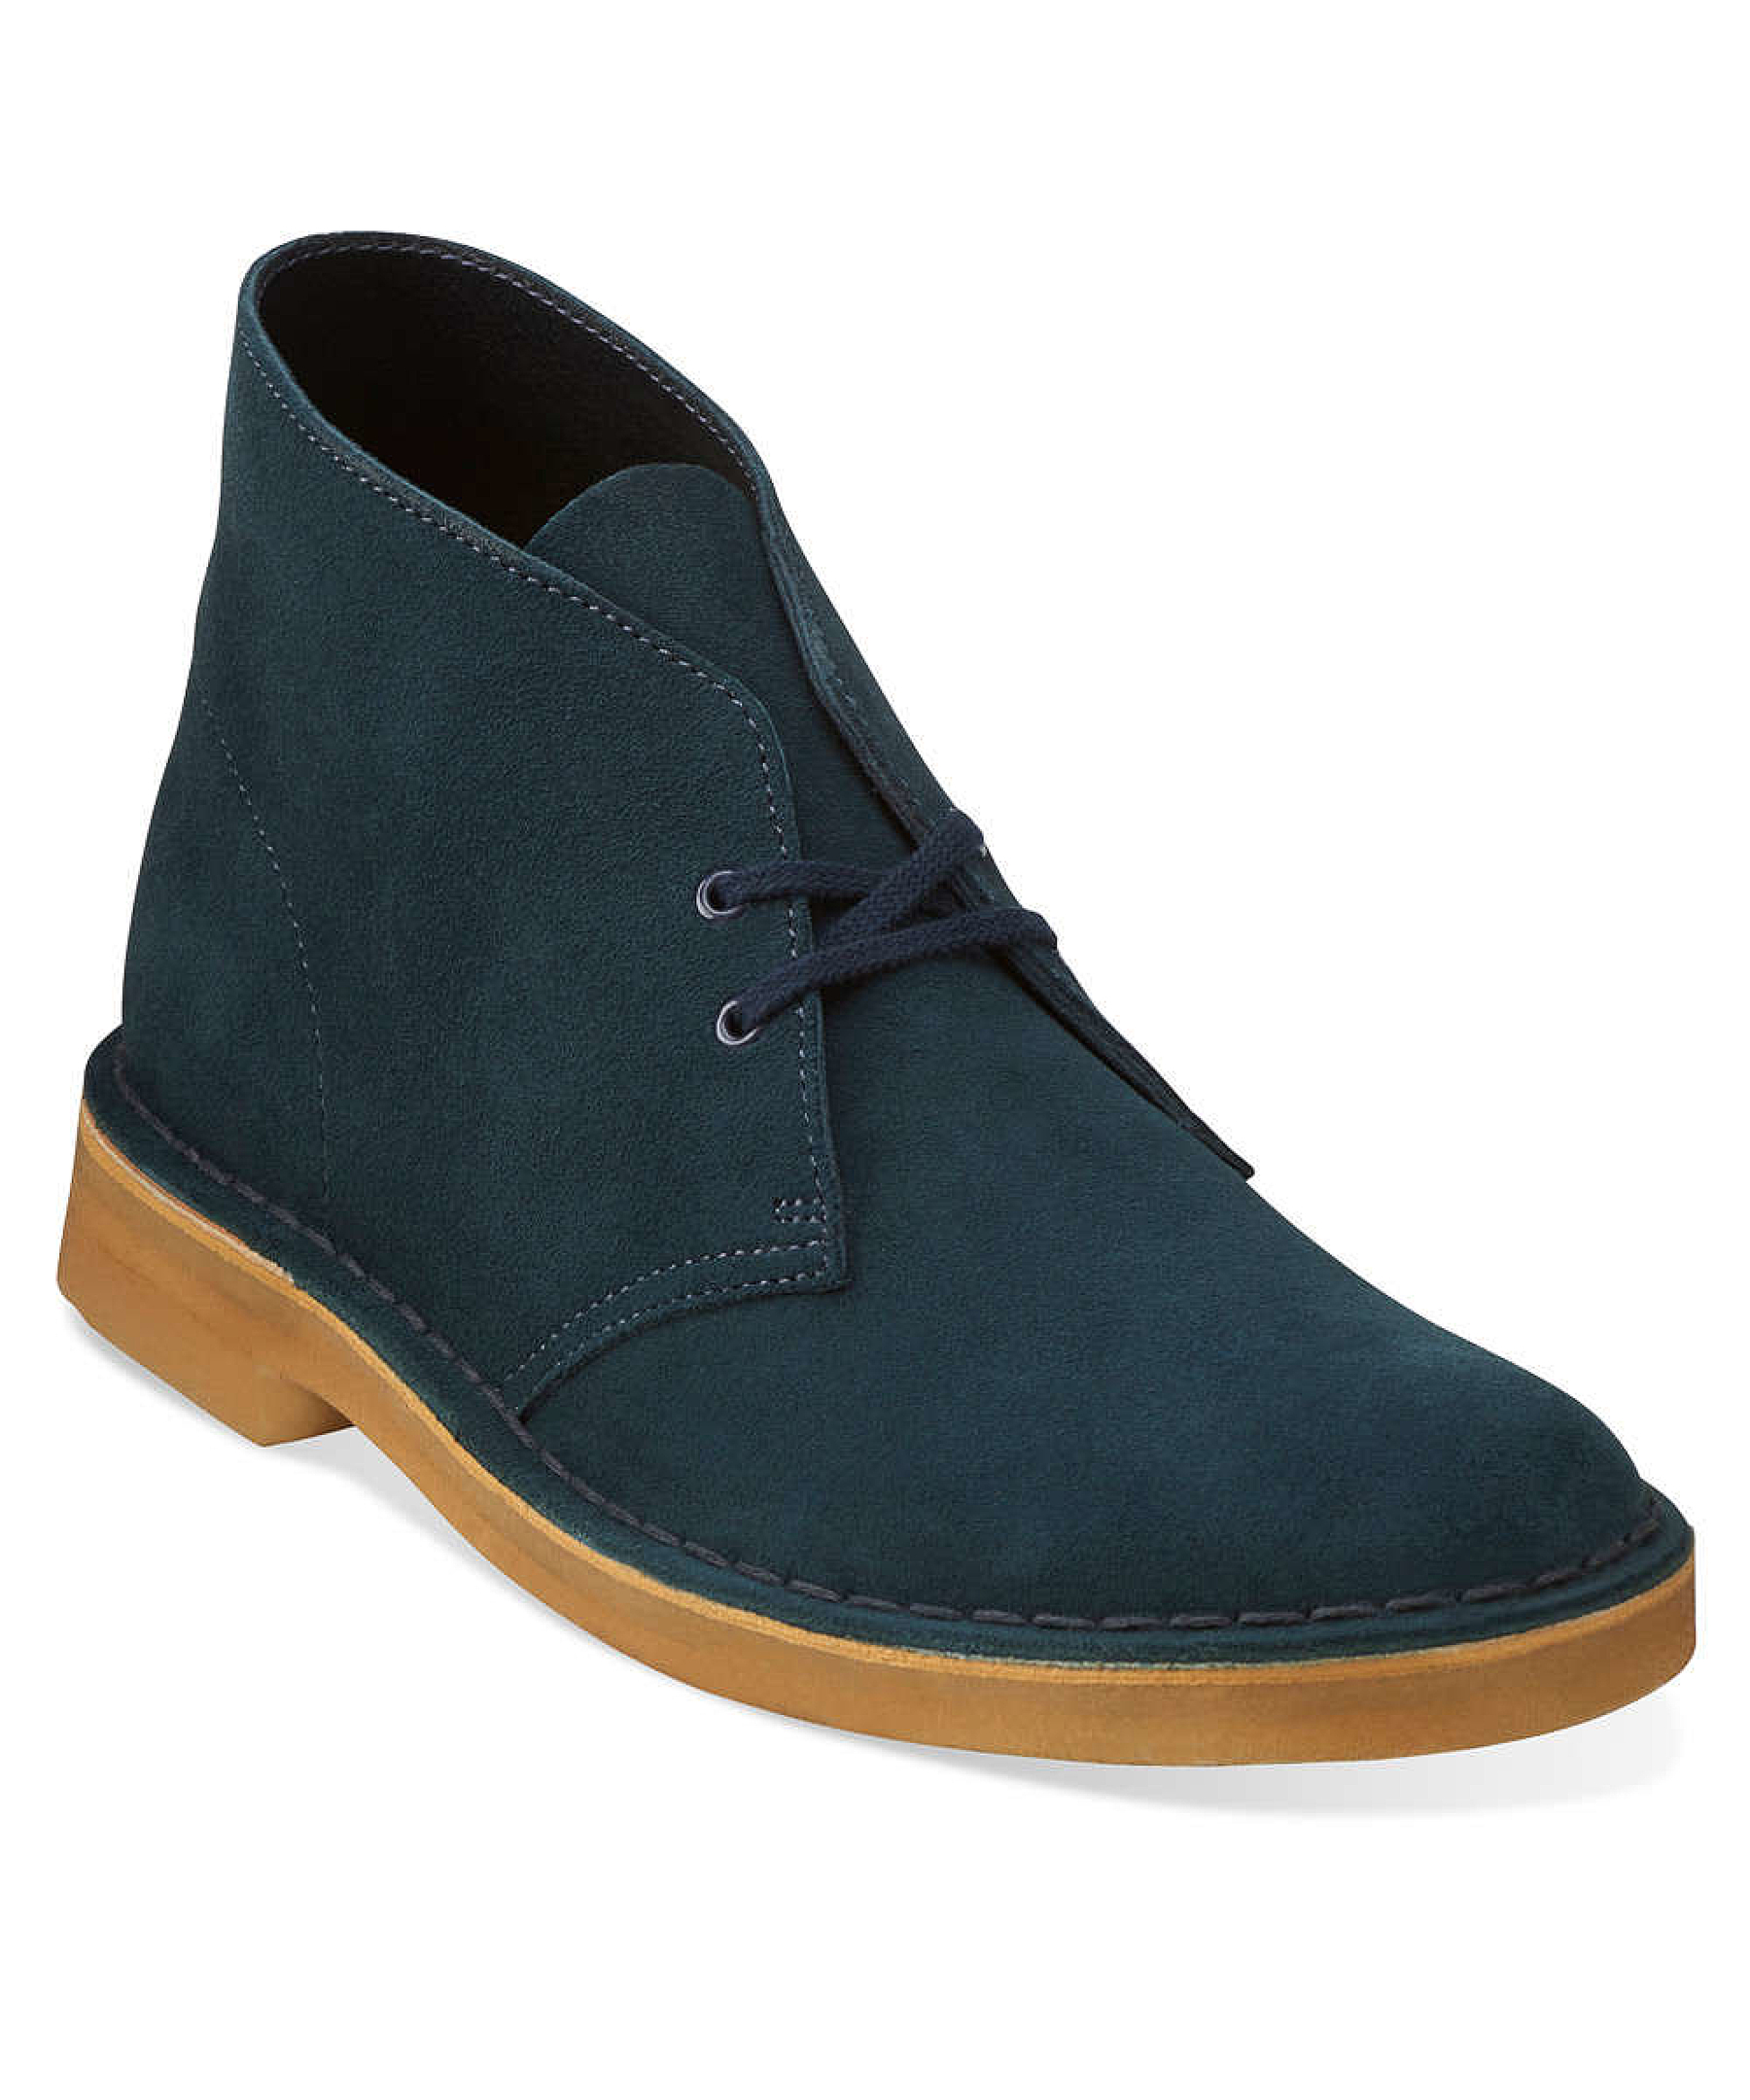 Desert Boots for Men. The desert boot dates back to the s when creator Nathan Clark was a member of the British army stationed in Burma. Noticing that some officers were wearing comfortable lace-up suede boots, Clark found out the source of the boots was a bazaar in Egypt.